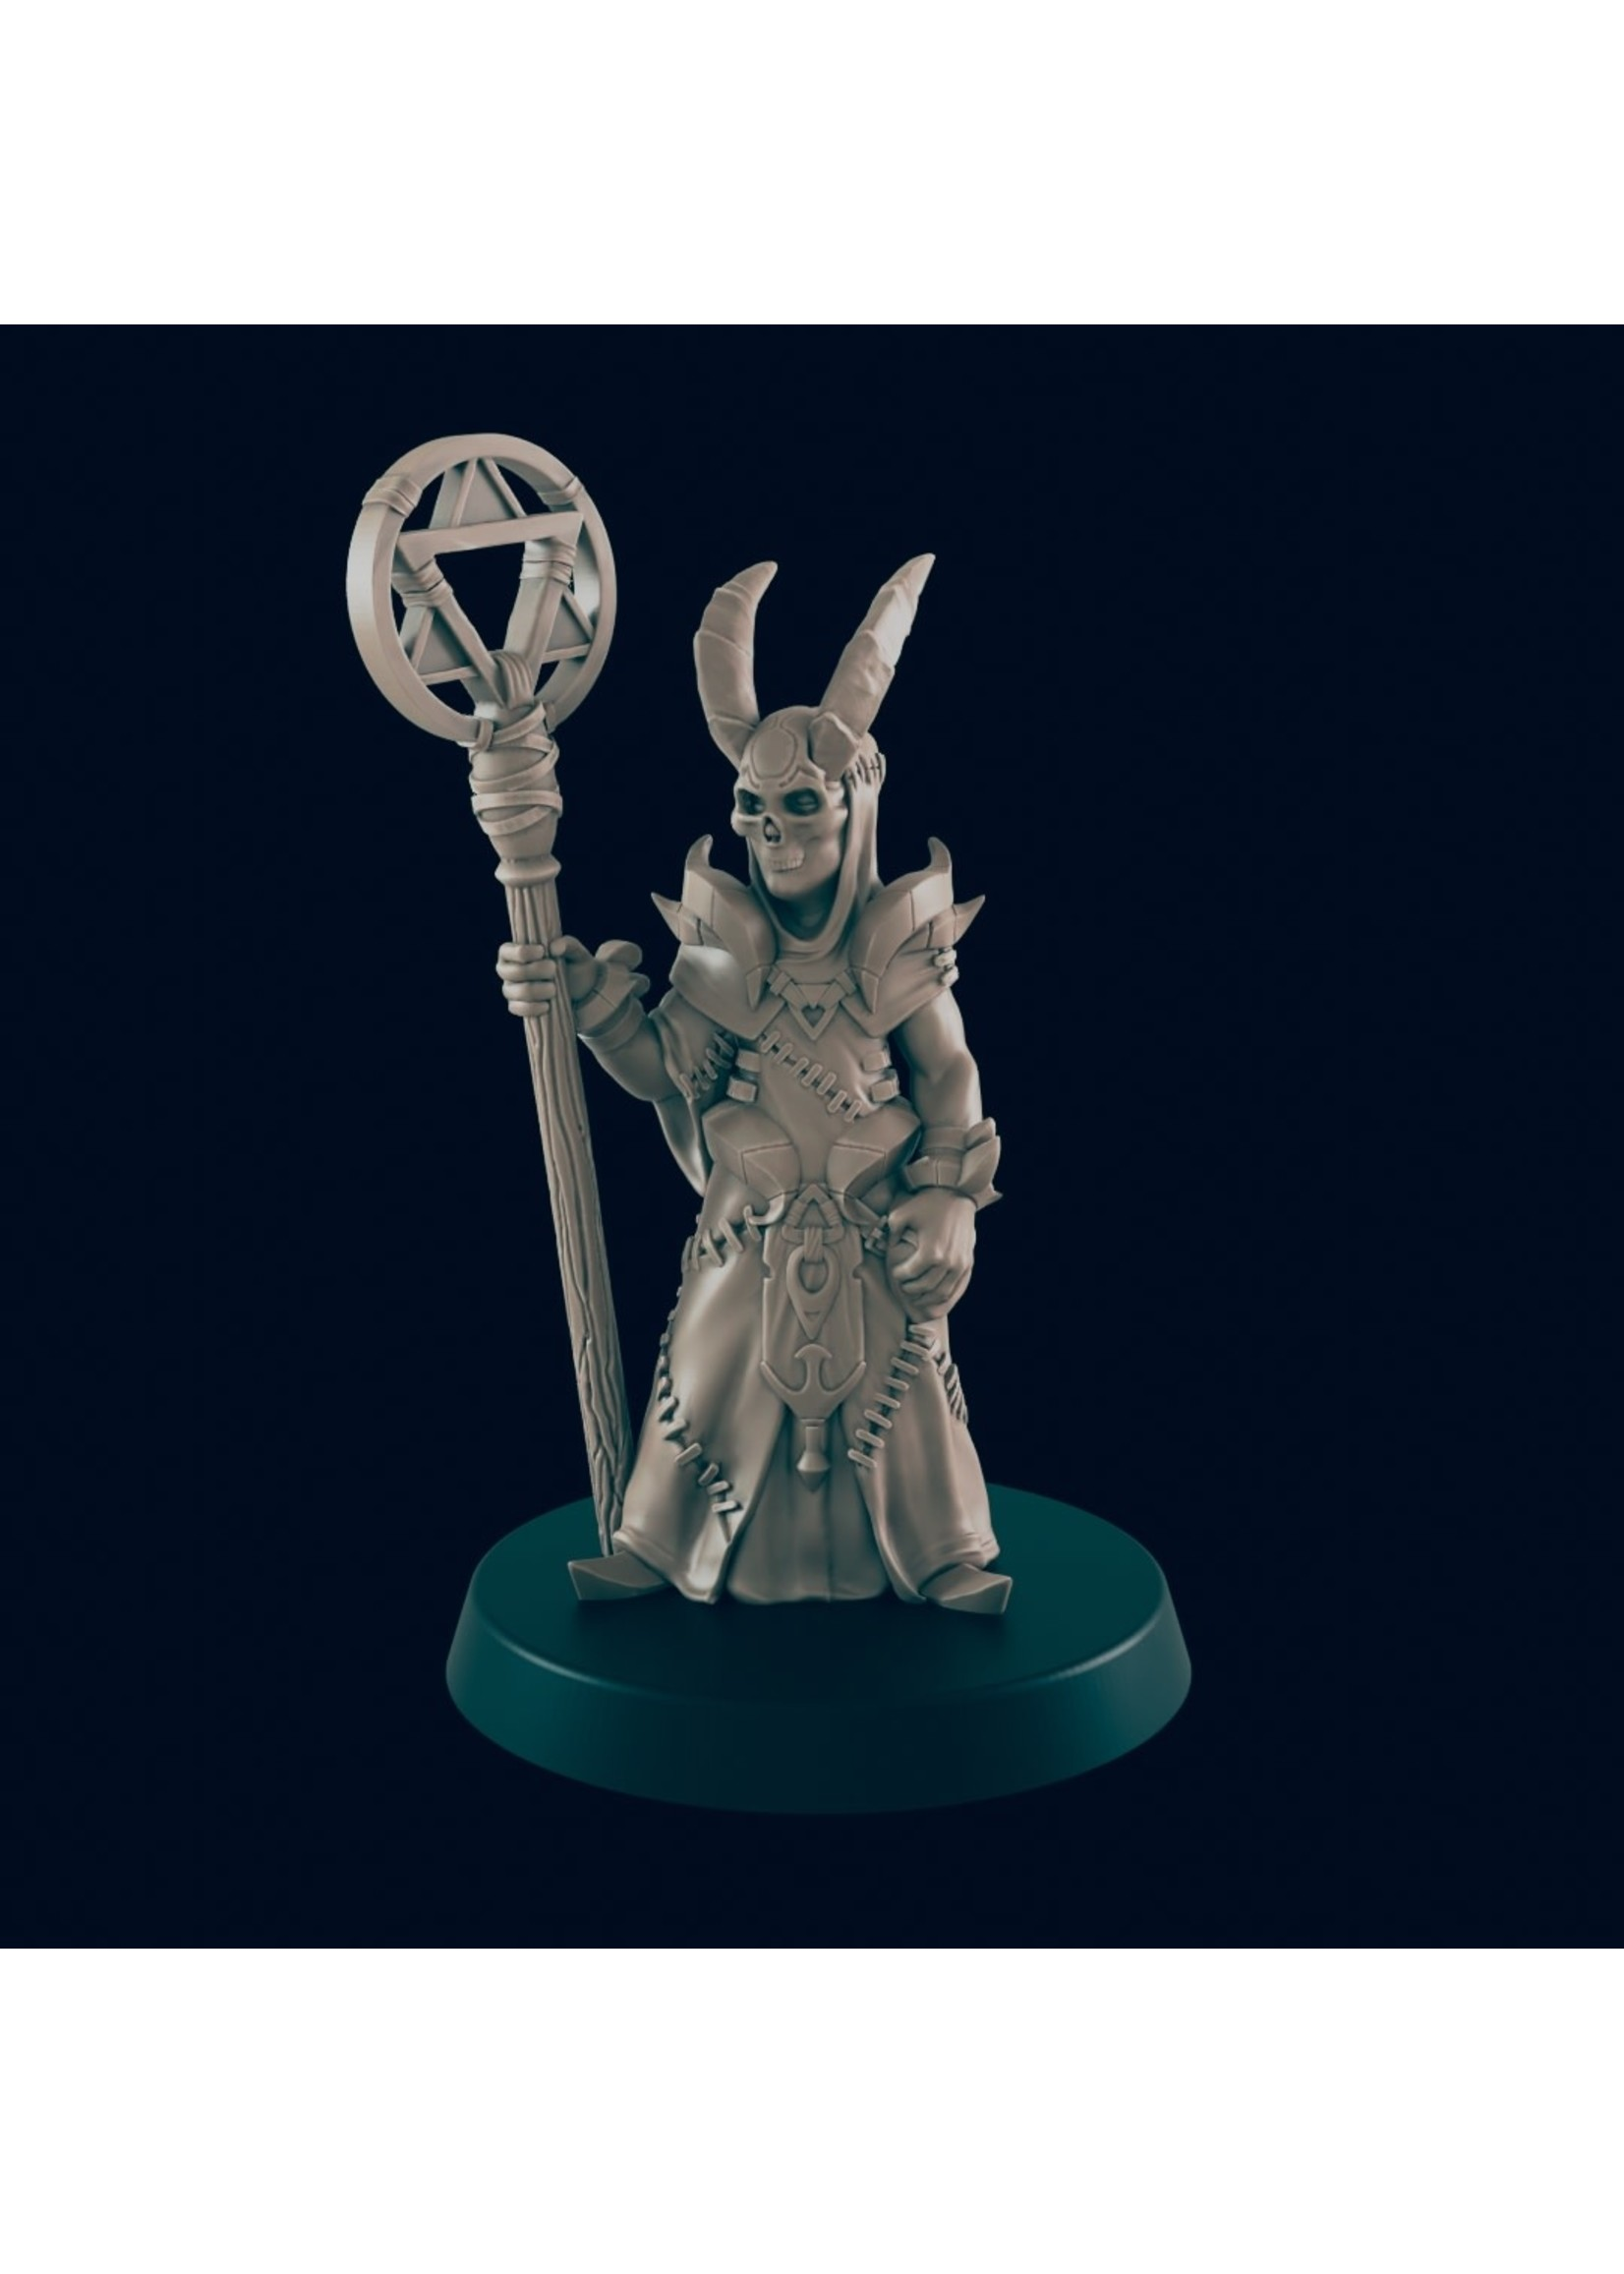 3D Printed Miniature - Cultist 2  - Dungeons & Dragons - Beasts and Baddies